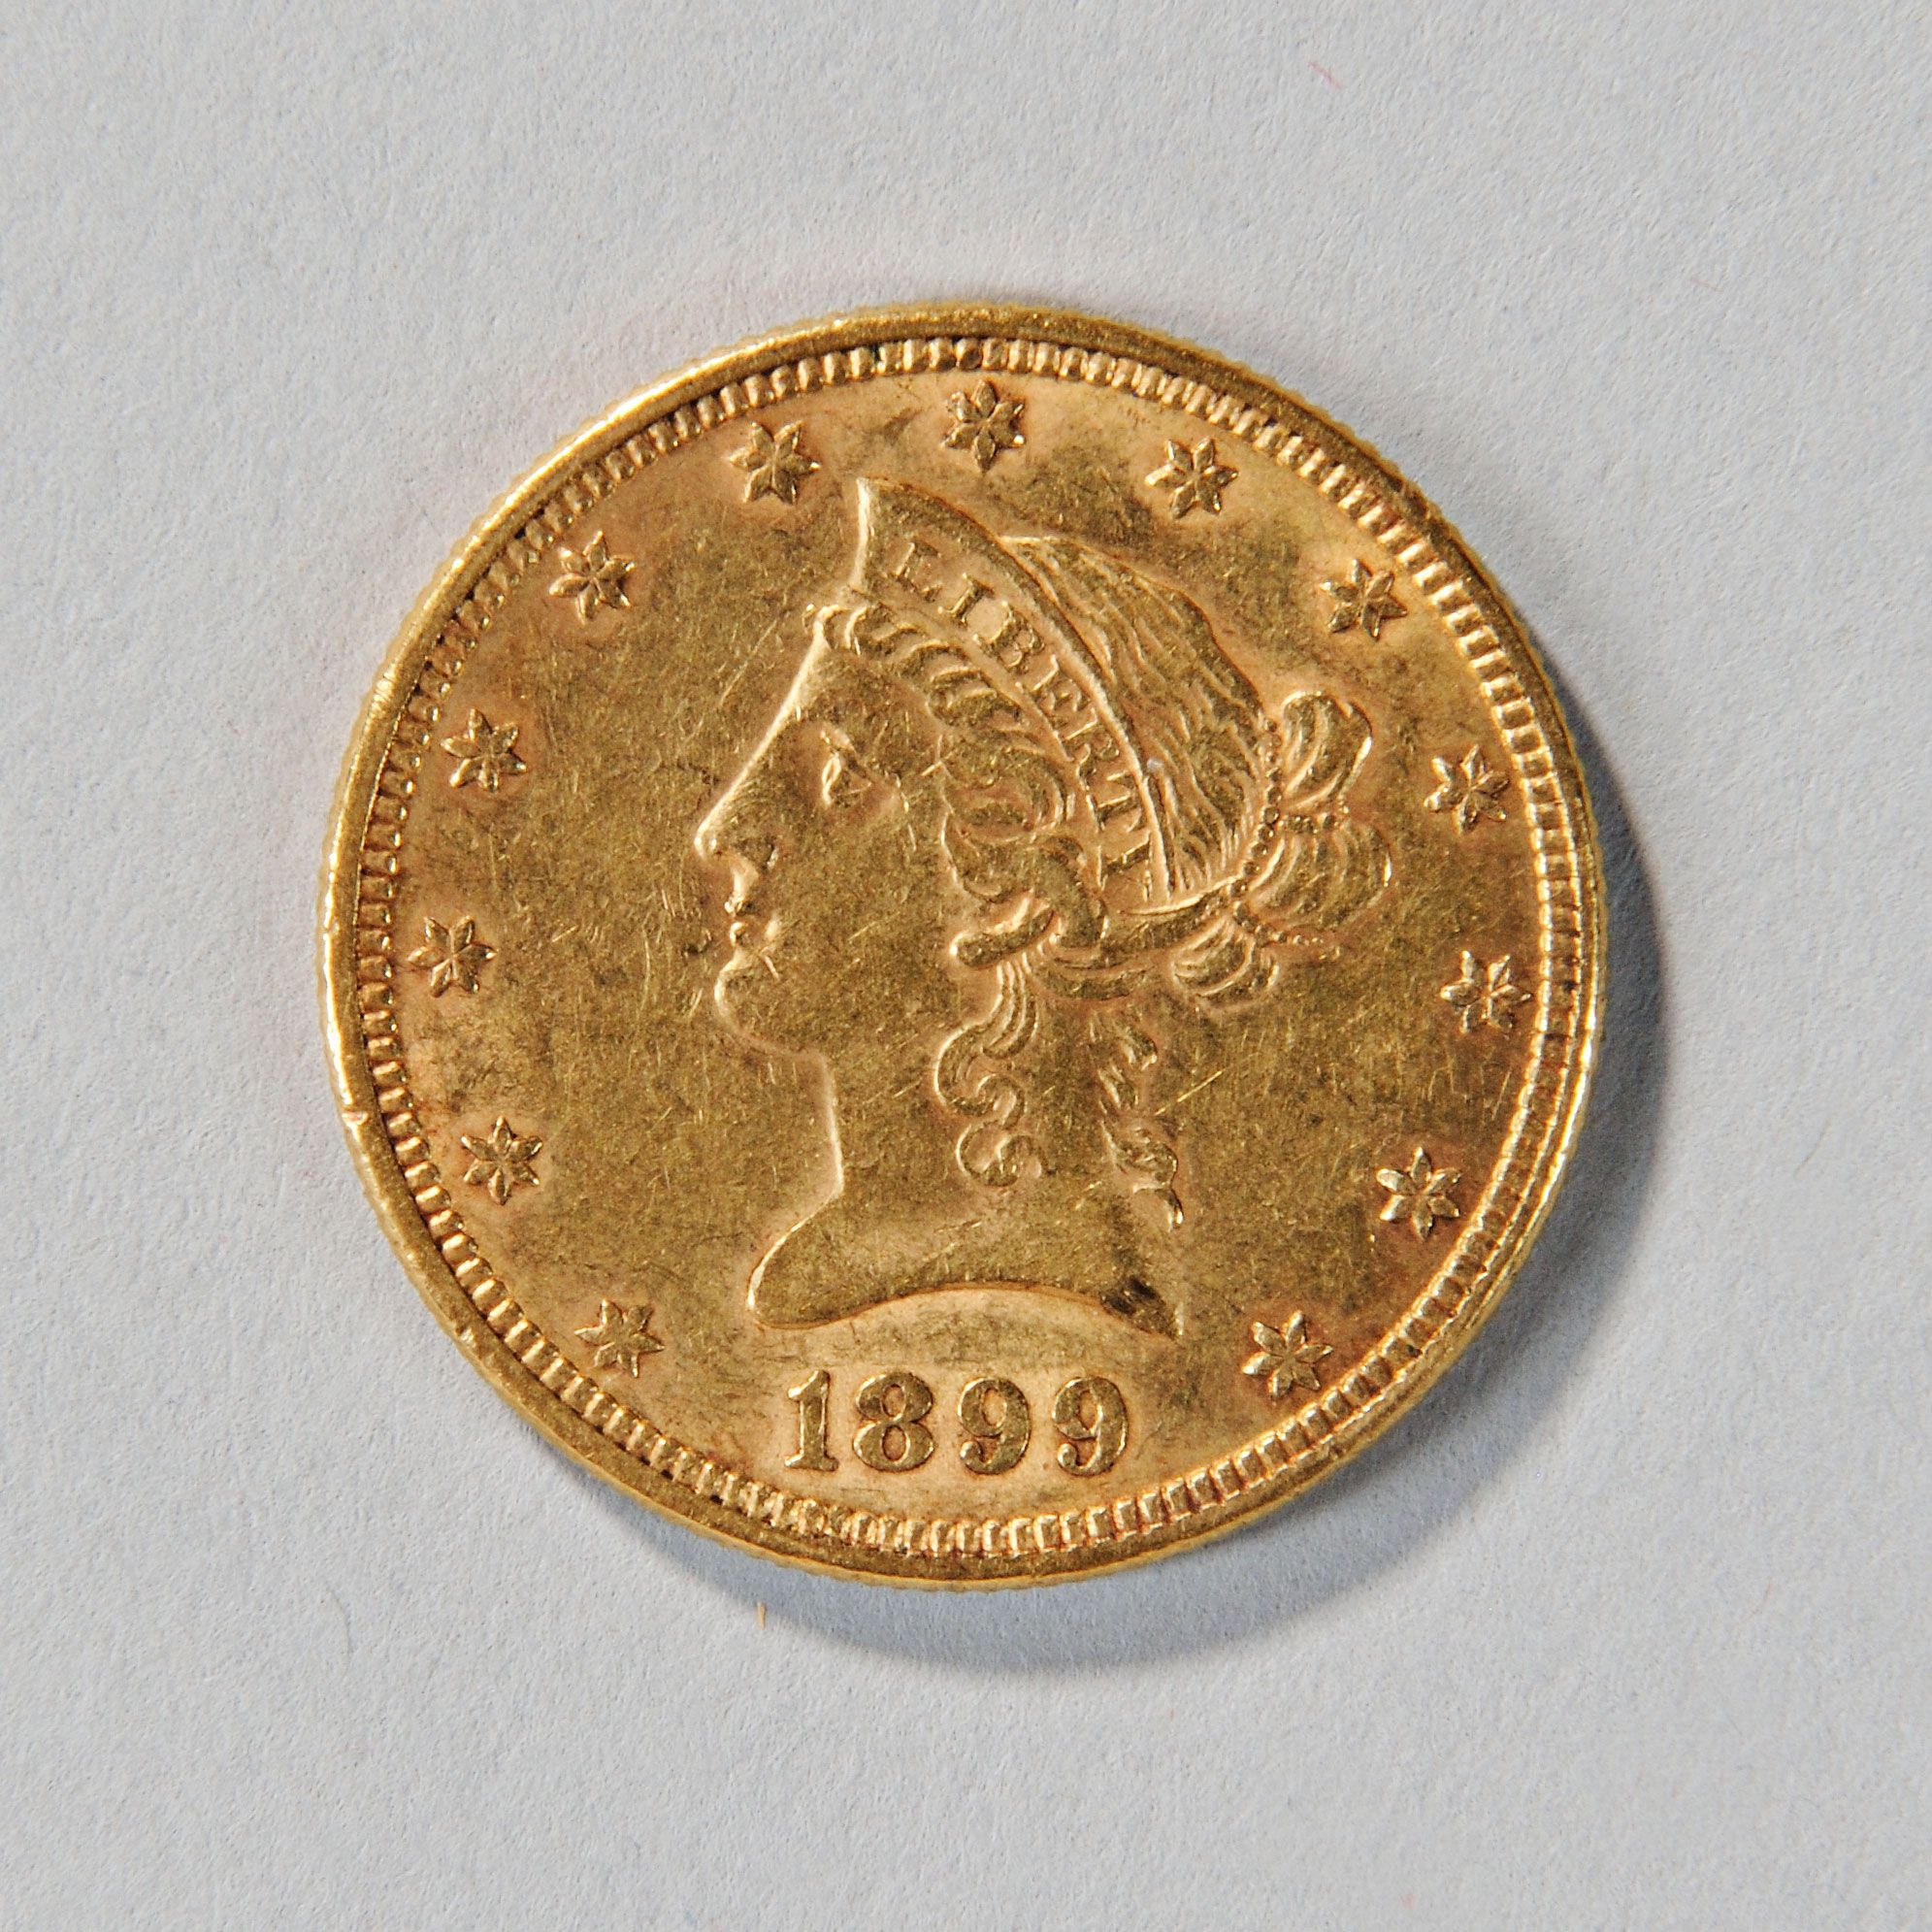 1899 Liberty Head Ten Dollar Gold Coin Auction 2903t Lot 1088 Estimate 400 600 Antique Coins Coins Gold Coins